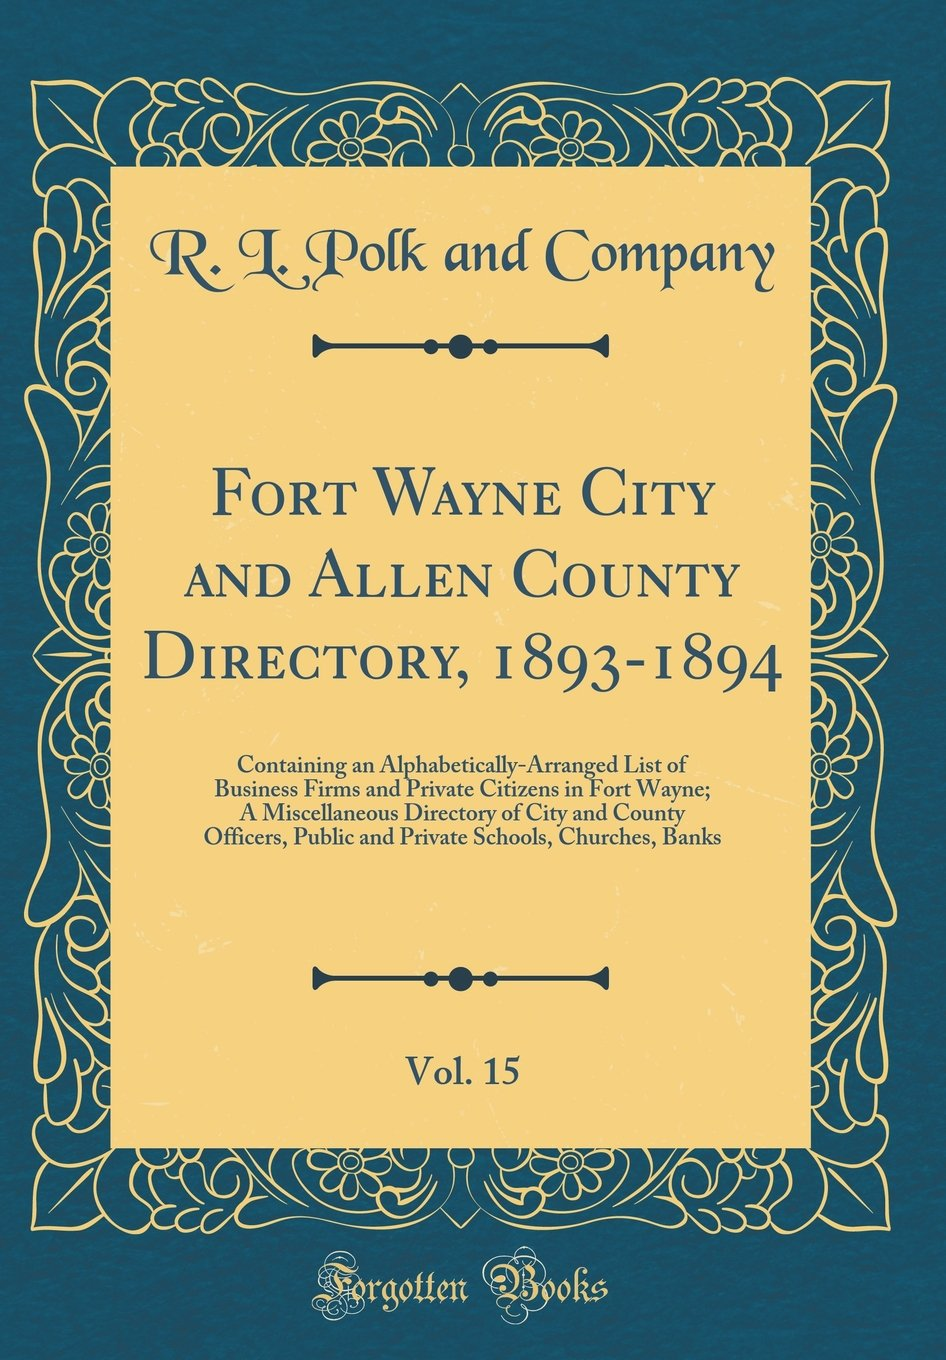 Download Fort Wayne City and Allen County Directory, 1893-1894, Vol. 15: Containing an Alphabetically-Arranged List of Business Firms and Private Citizens in ... Public and Private Schools, Churches, B PDF